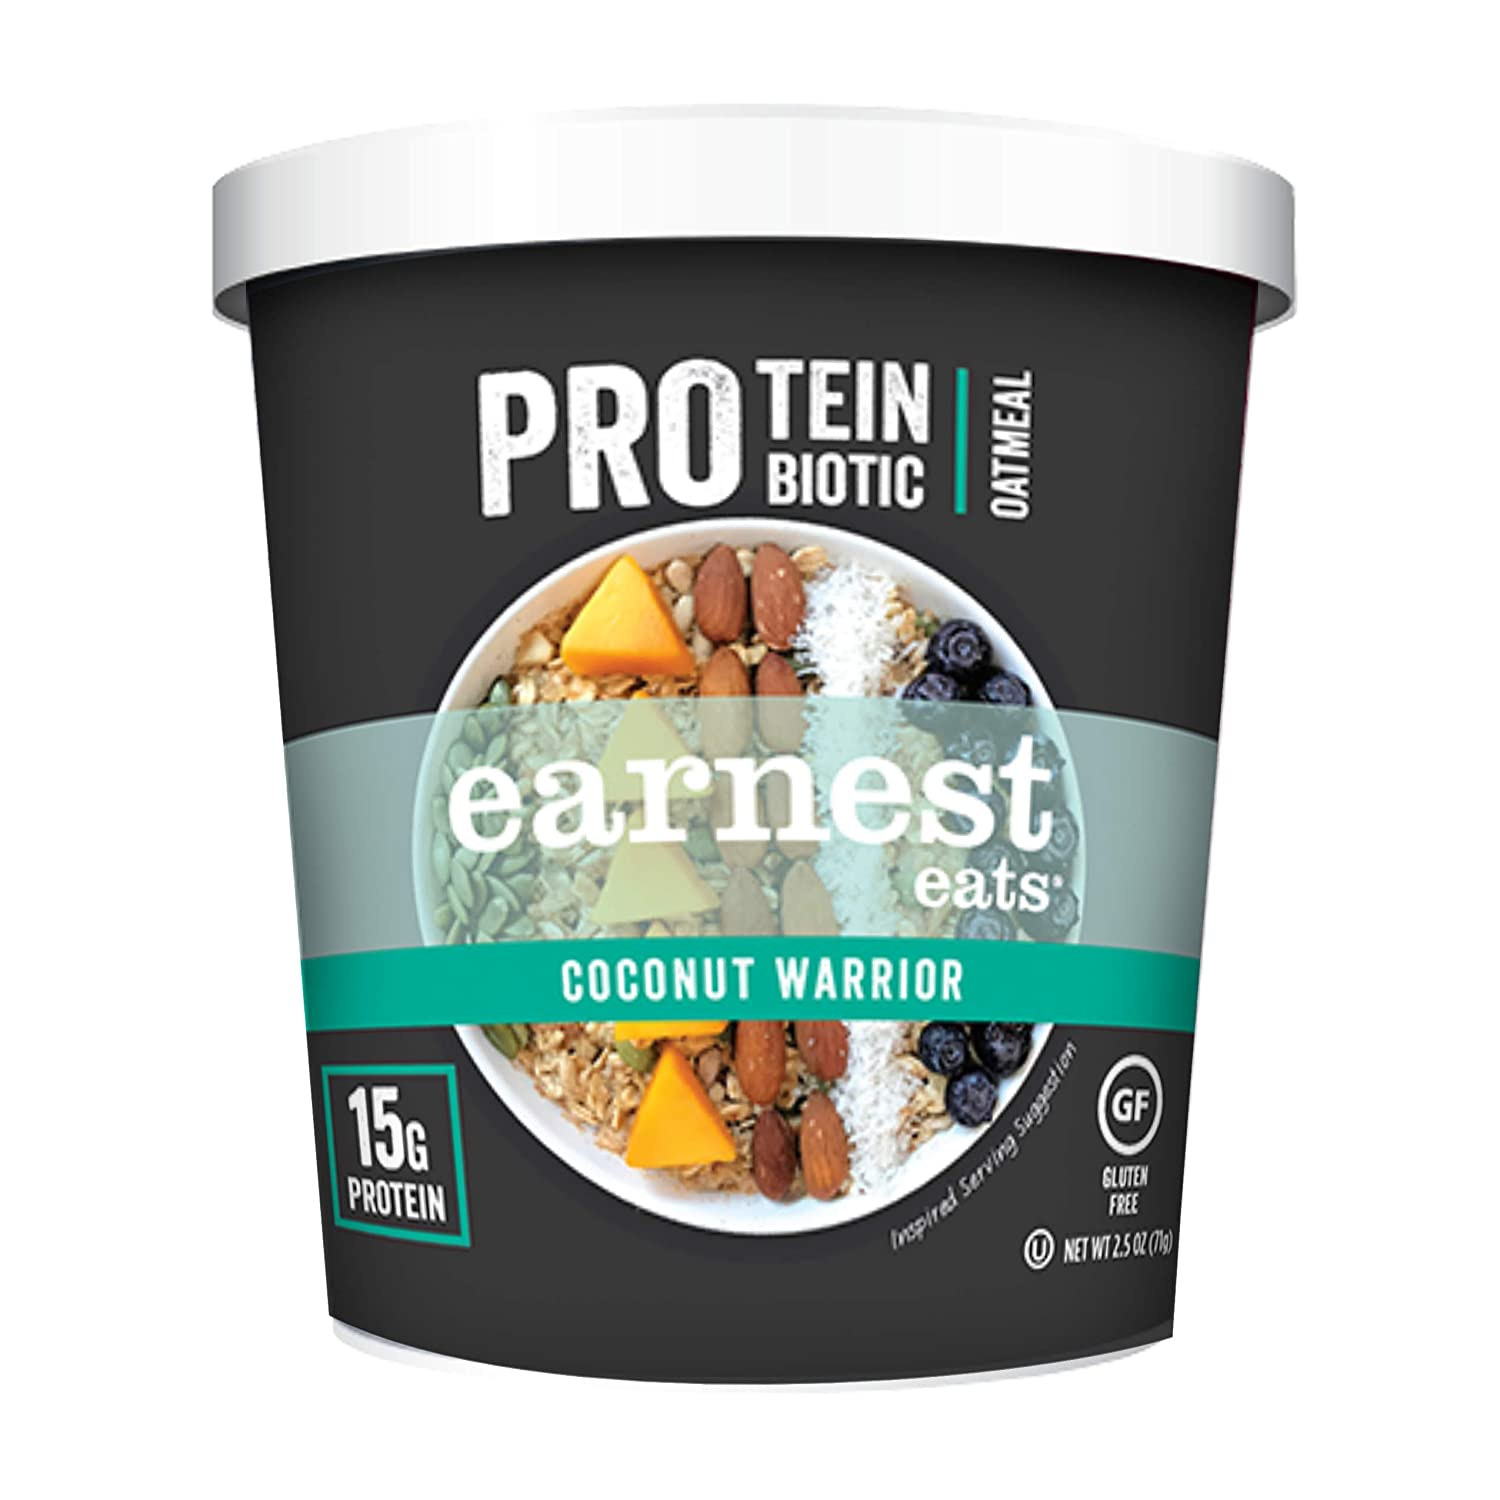 Earnest Eats PRO: Protein + Probiotic Superfood Oatmeal, Gluten Free, Coconut Warrior, 2.5oz Cup, 12-Pack, 15g Protein per Serving